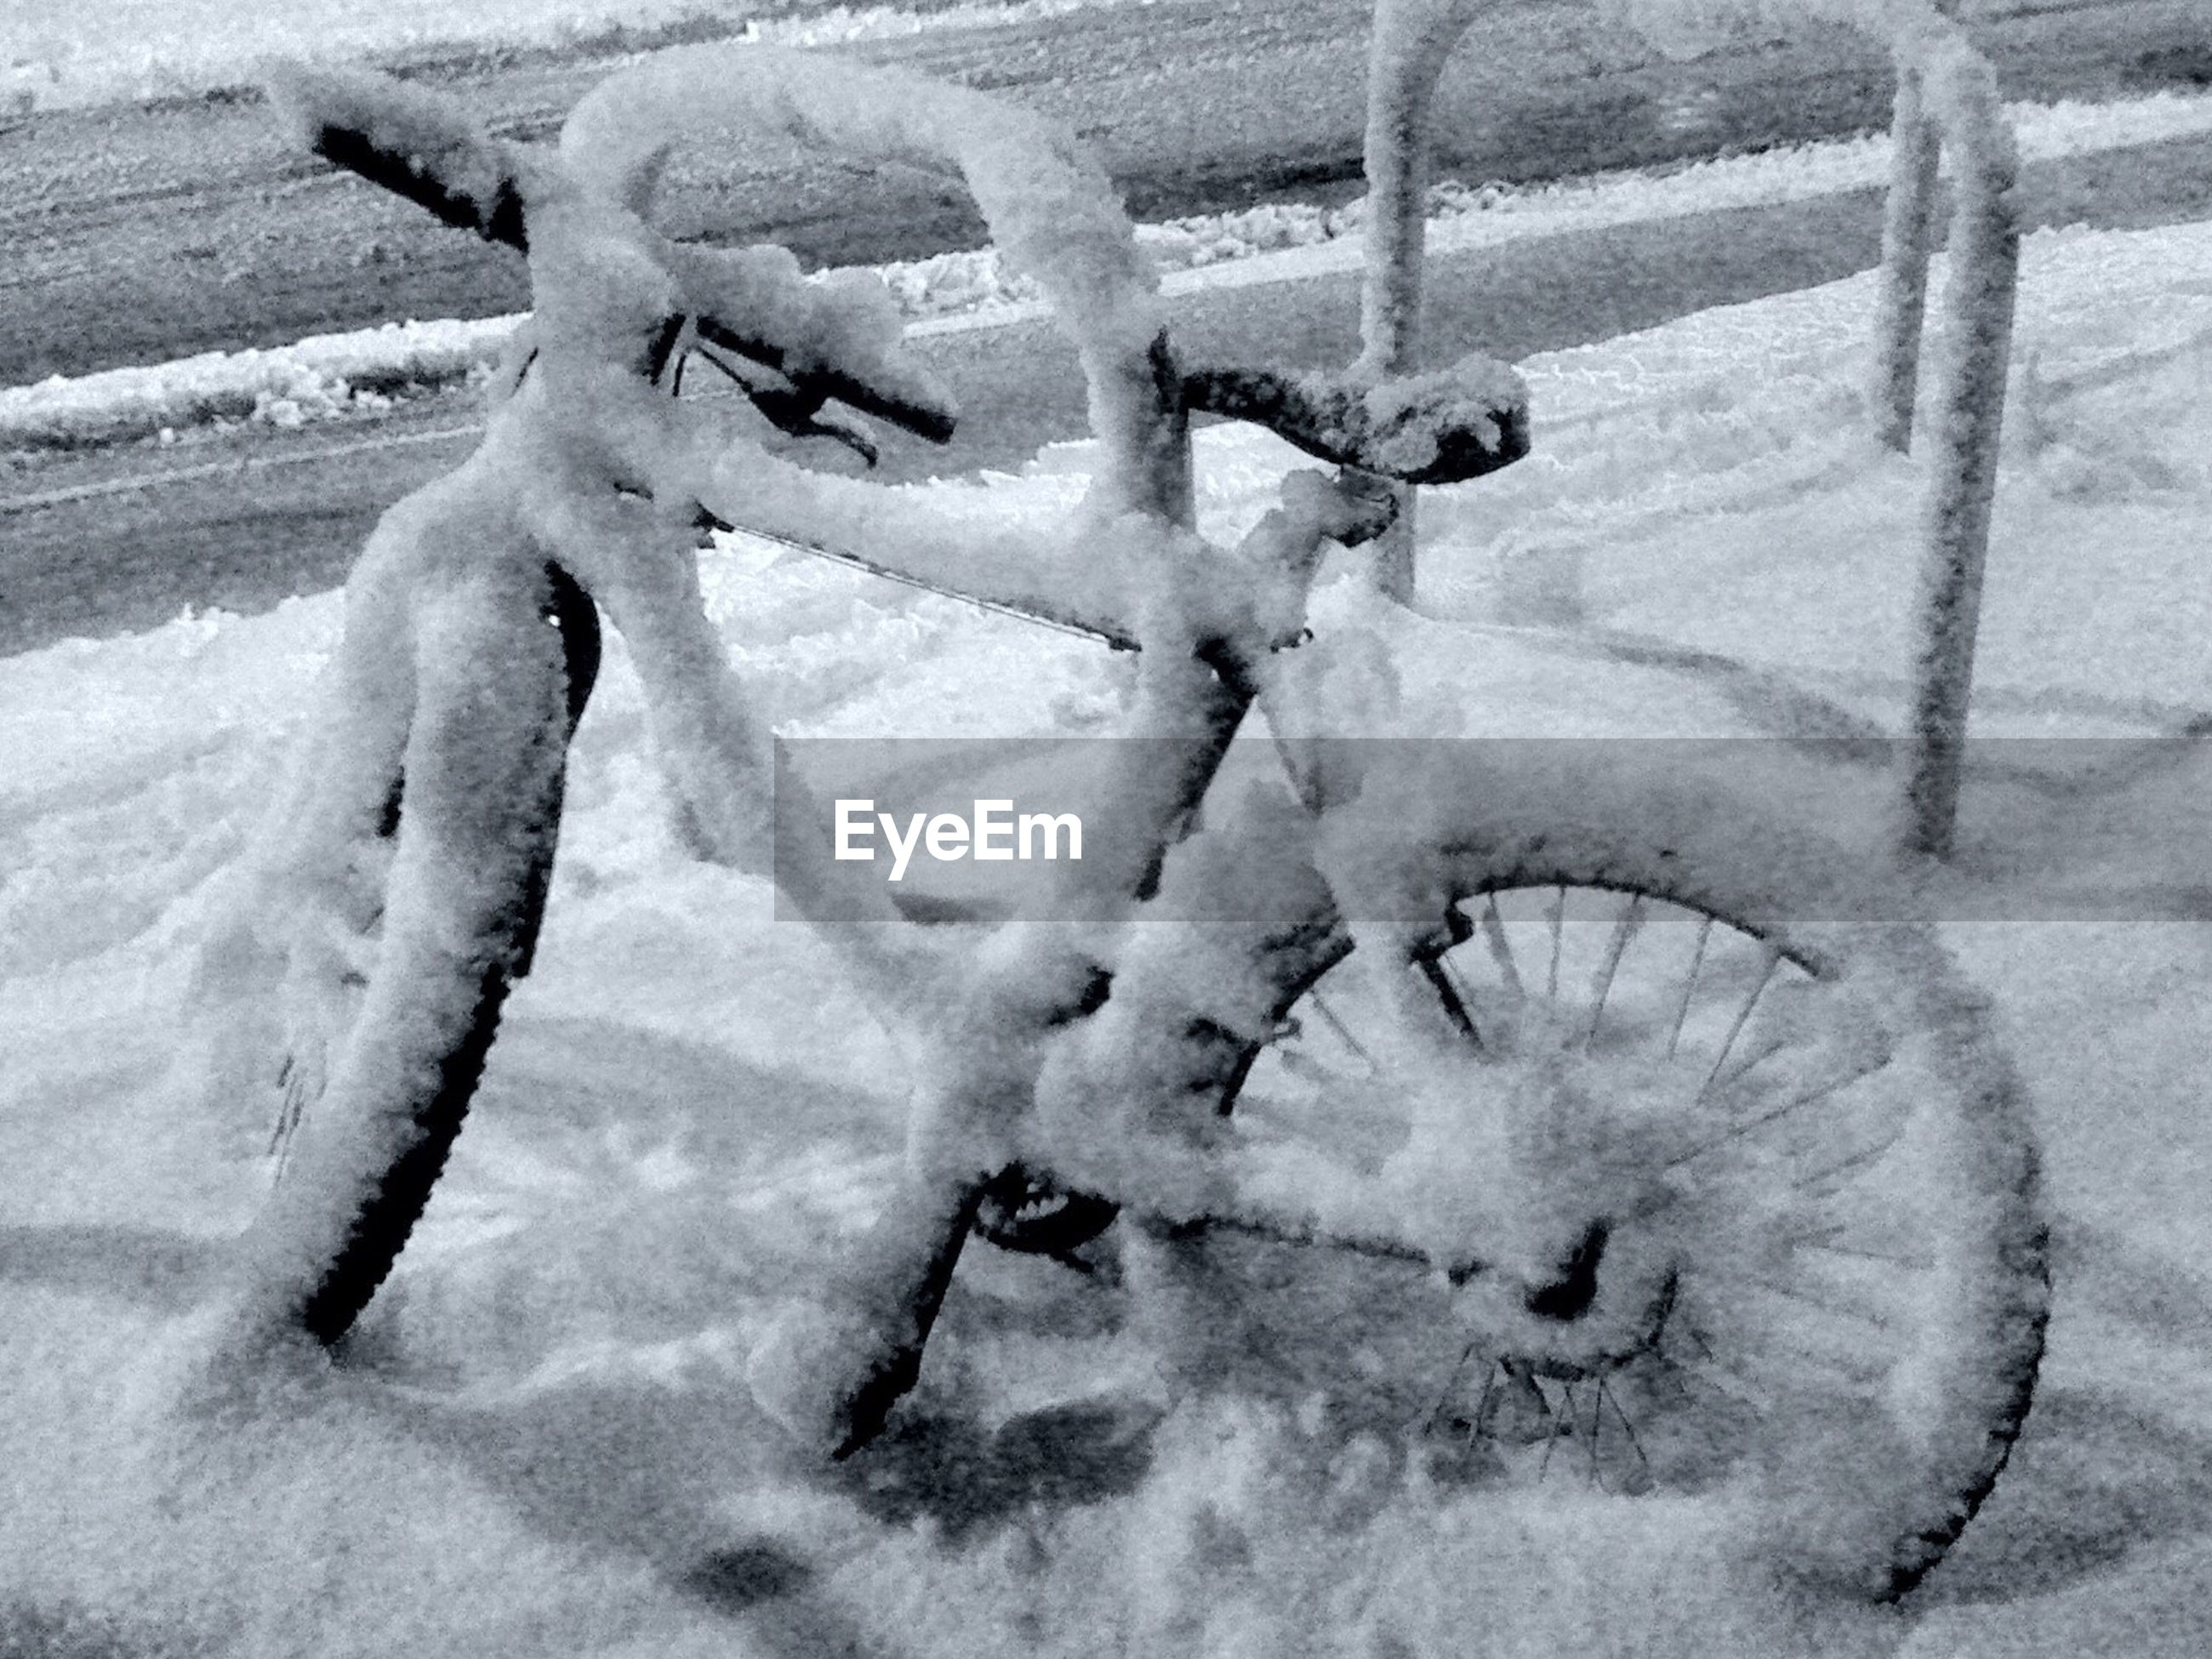 Frozen bicycle parked on footpath during winter